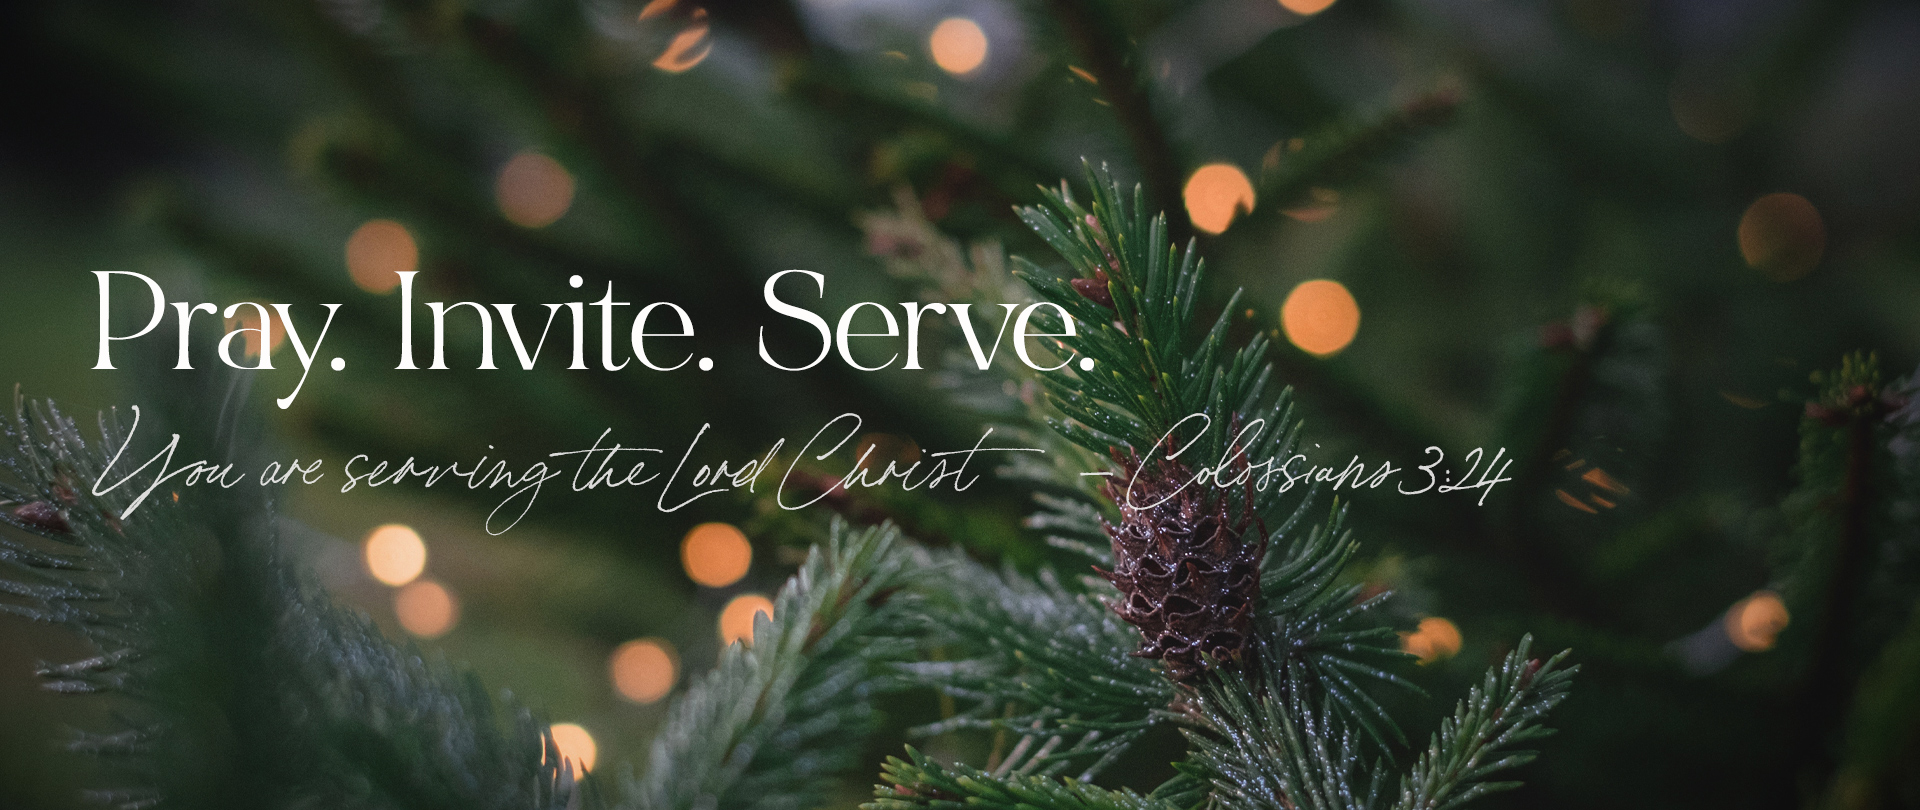 Pray. Invite. Serve.